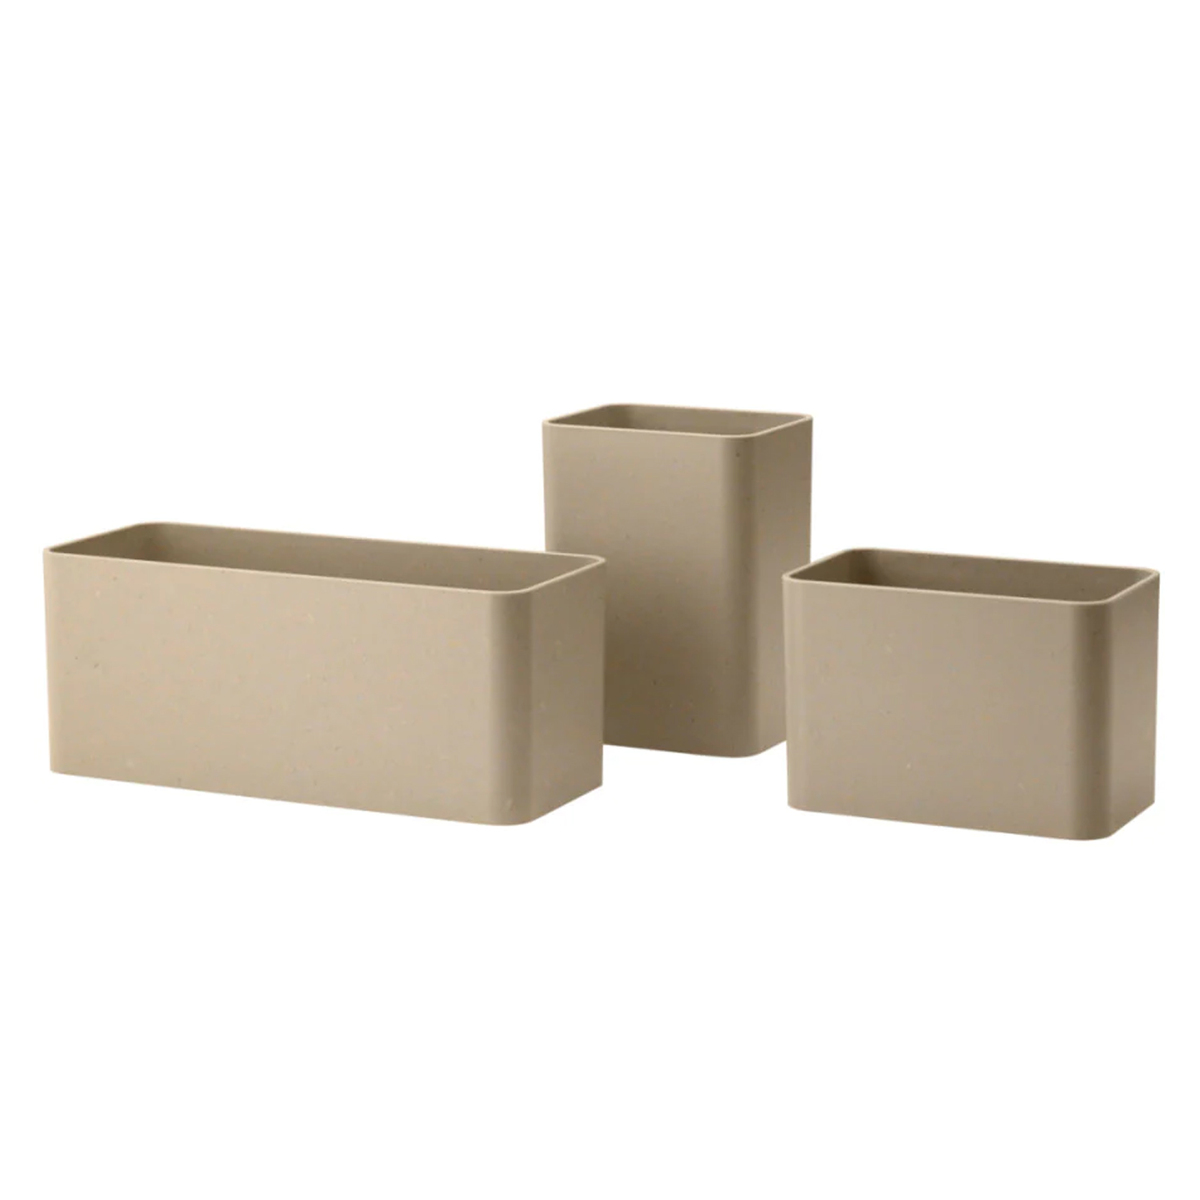 String Furniture String organizers, 3-pack, beige from String Furniture